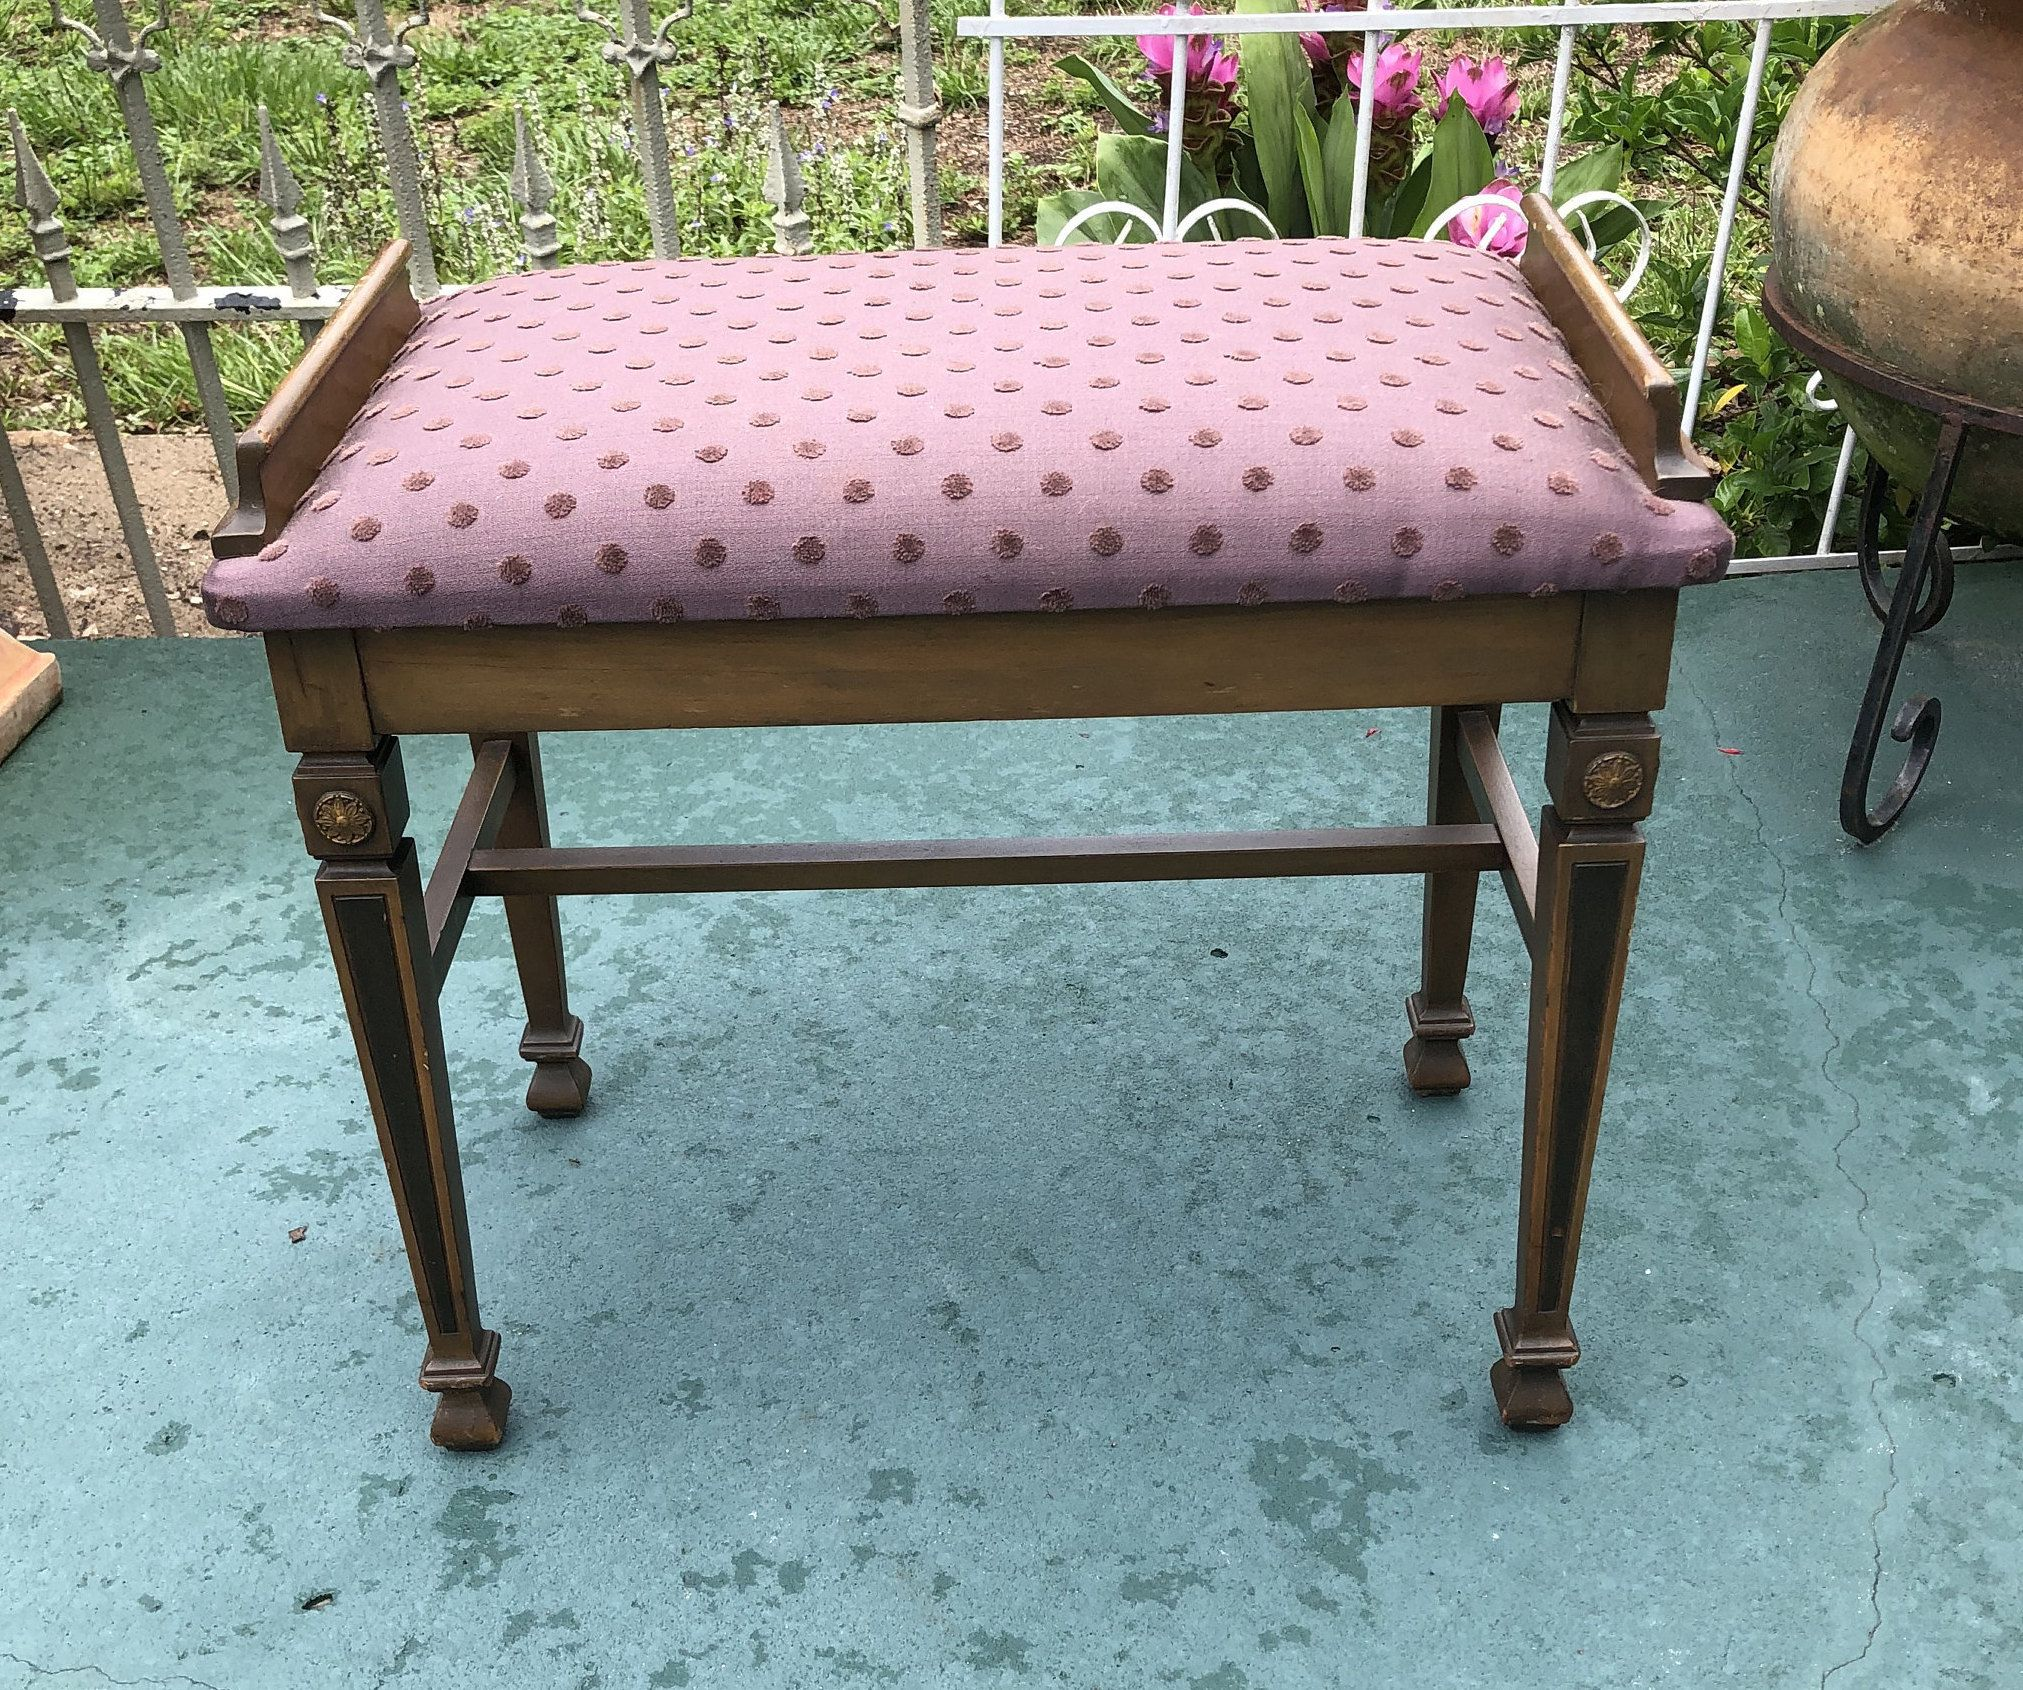 Antique Vanity Stool Piano Bench Upholstered Bench Wood Frame